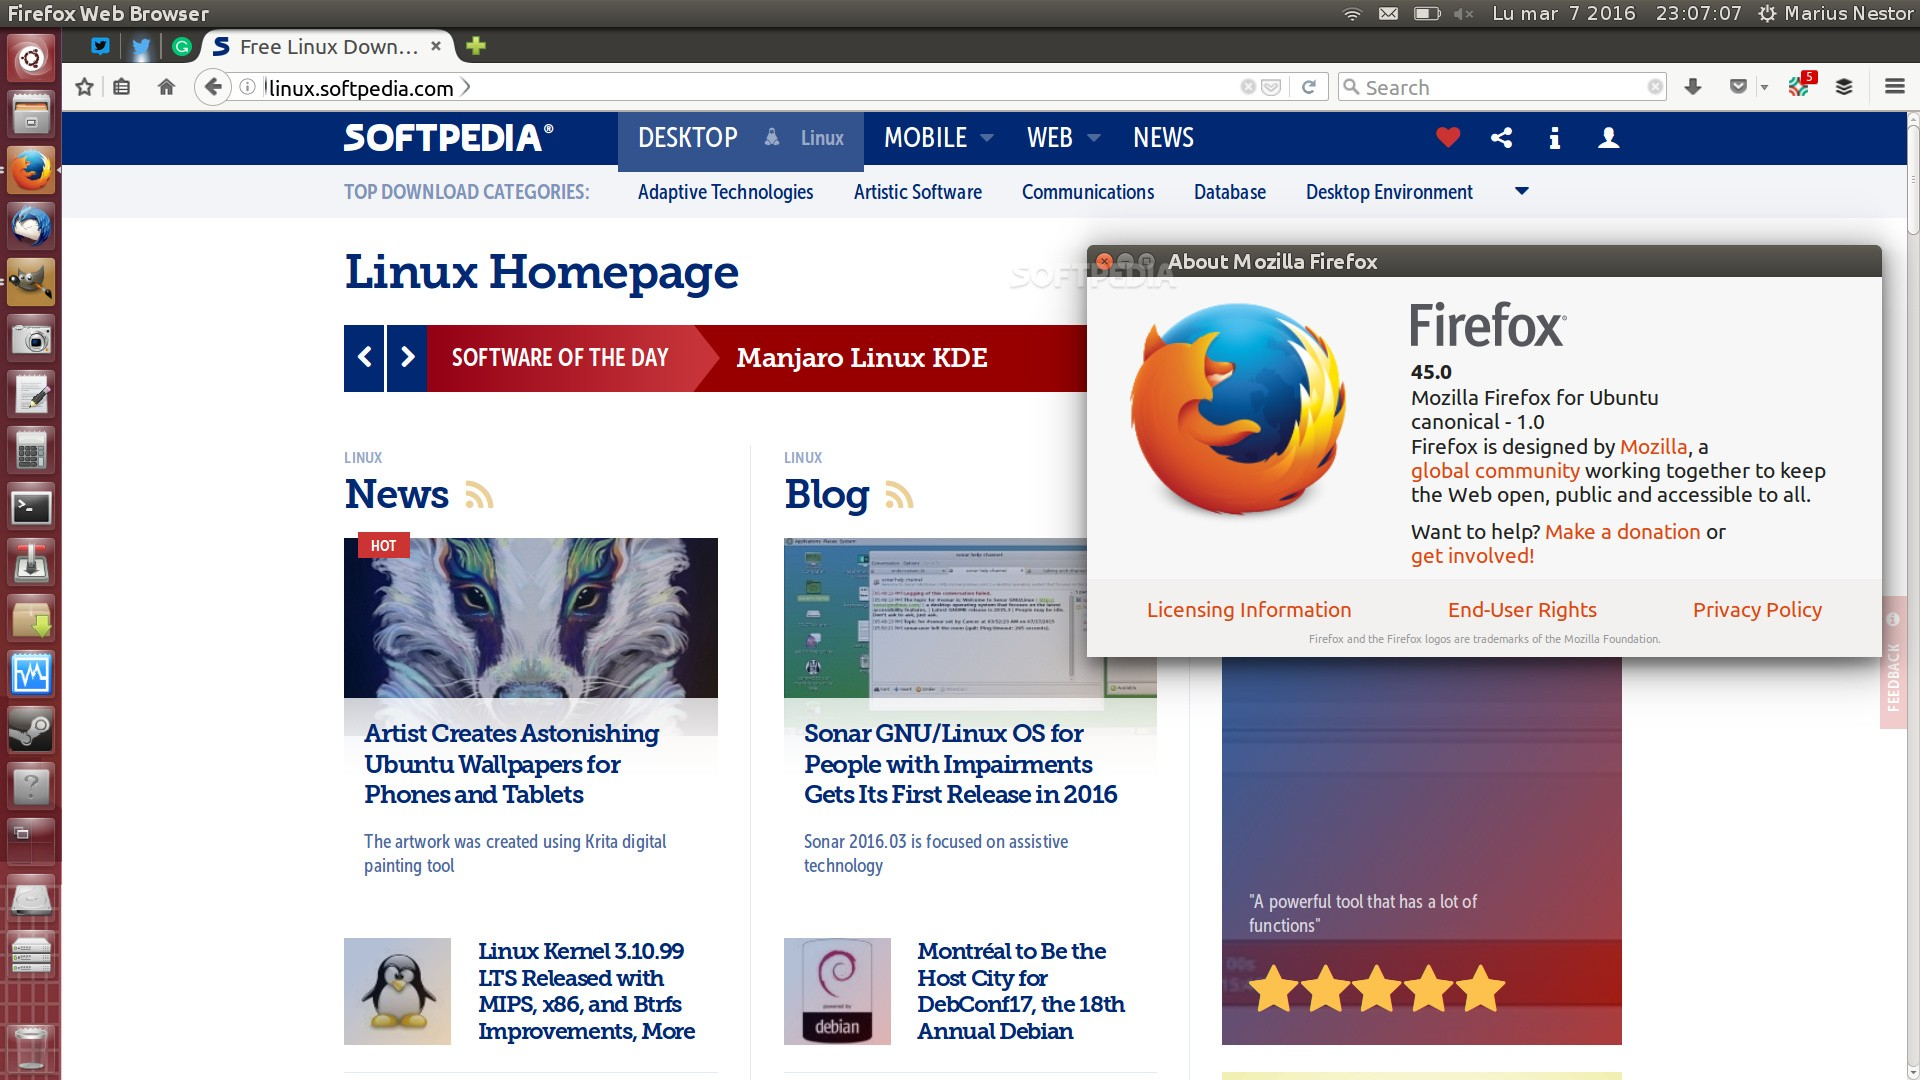 Mozilla Firefox 45 0 Now Available for Download, Linux GTK3